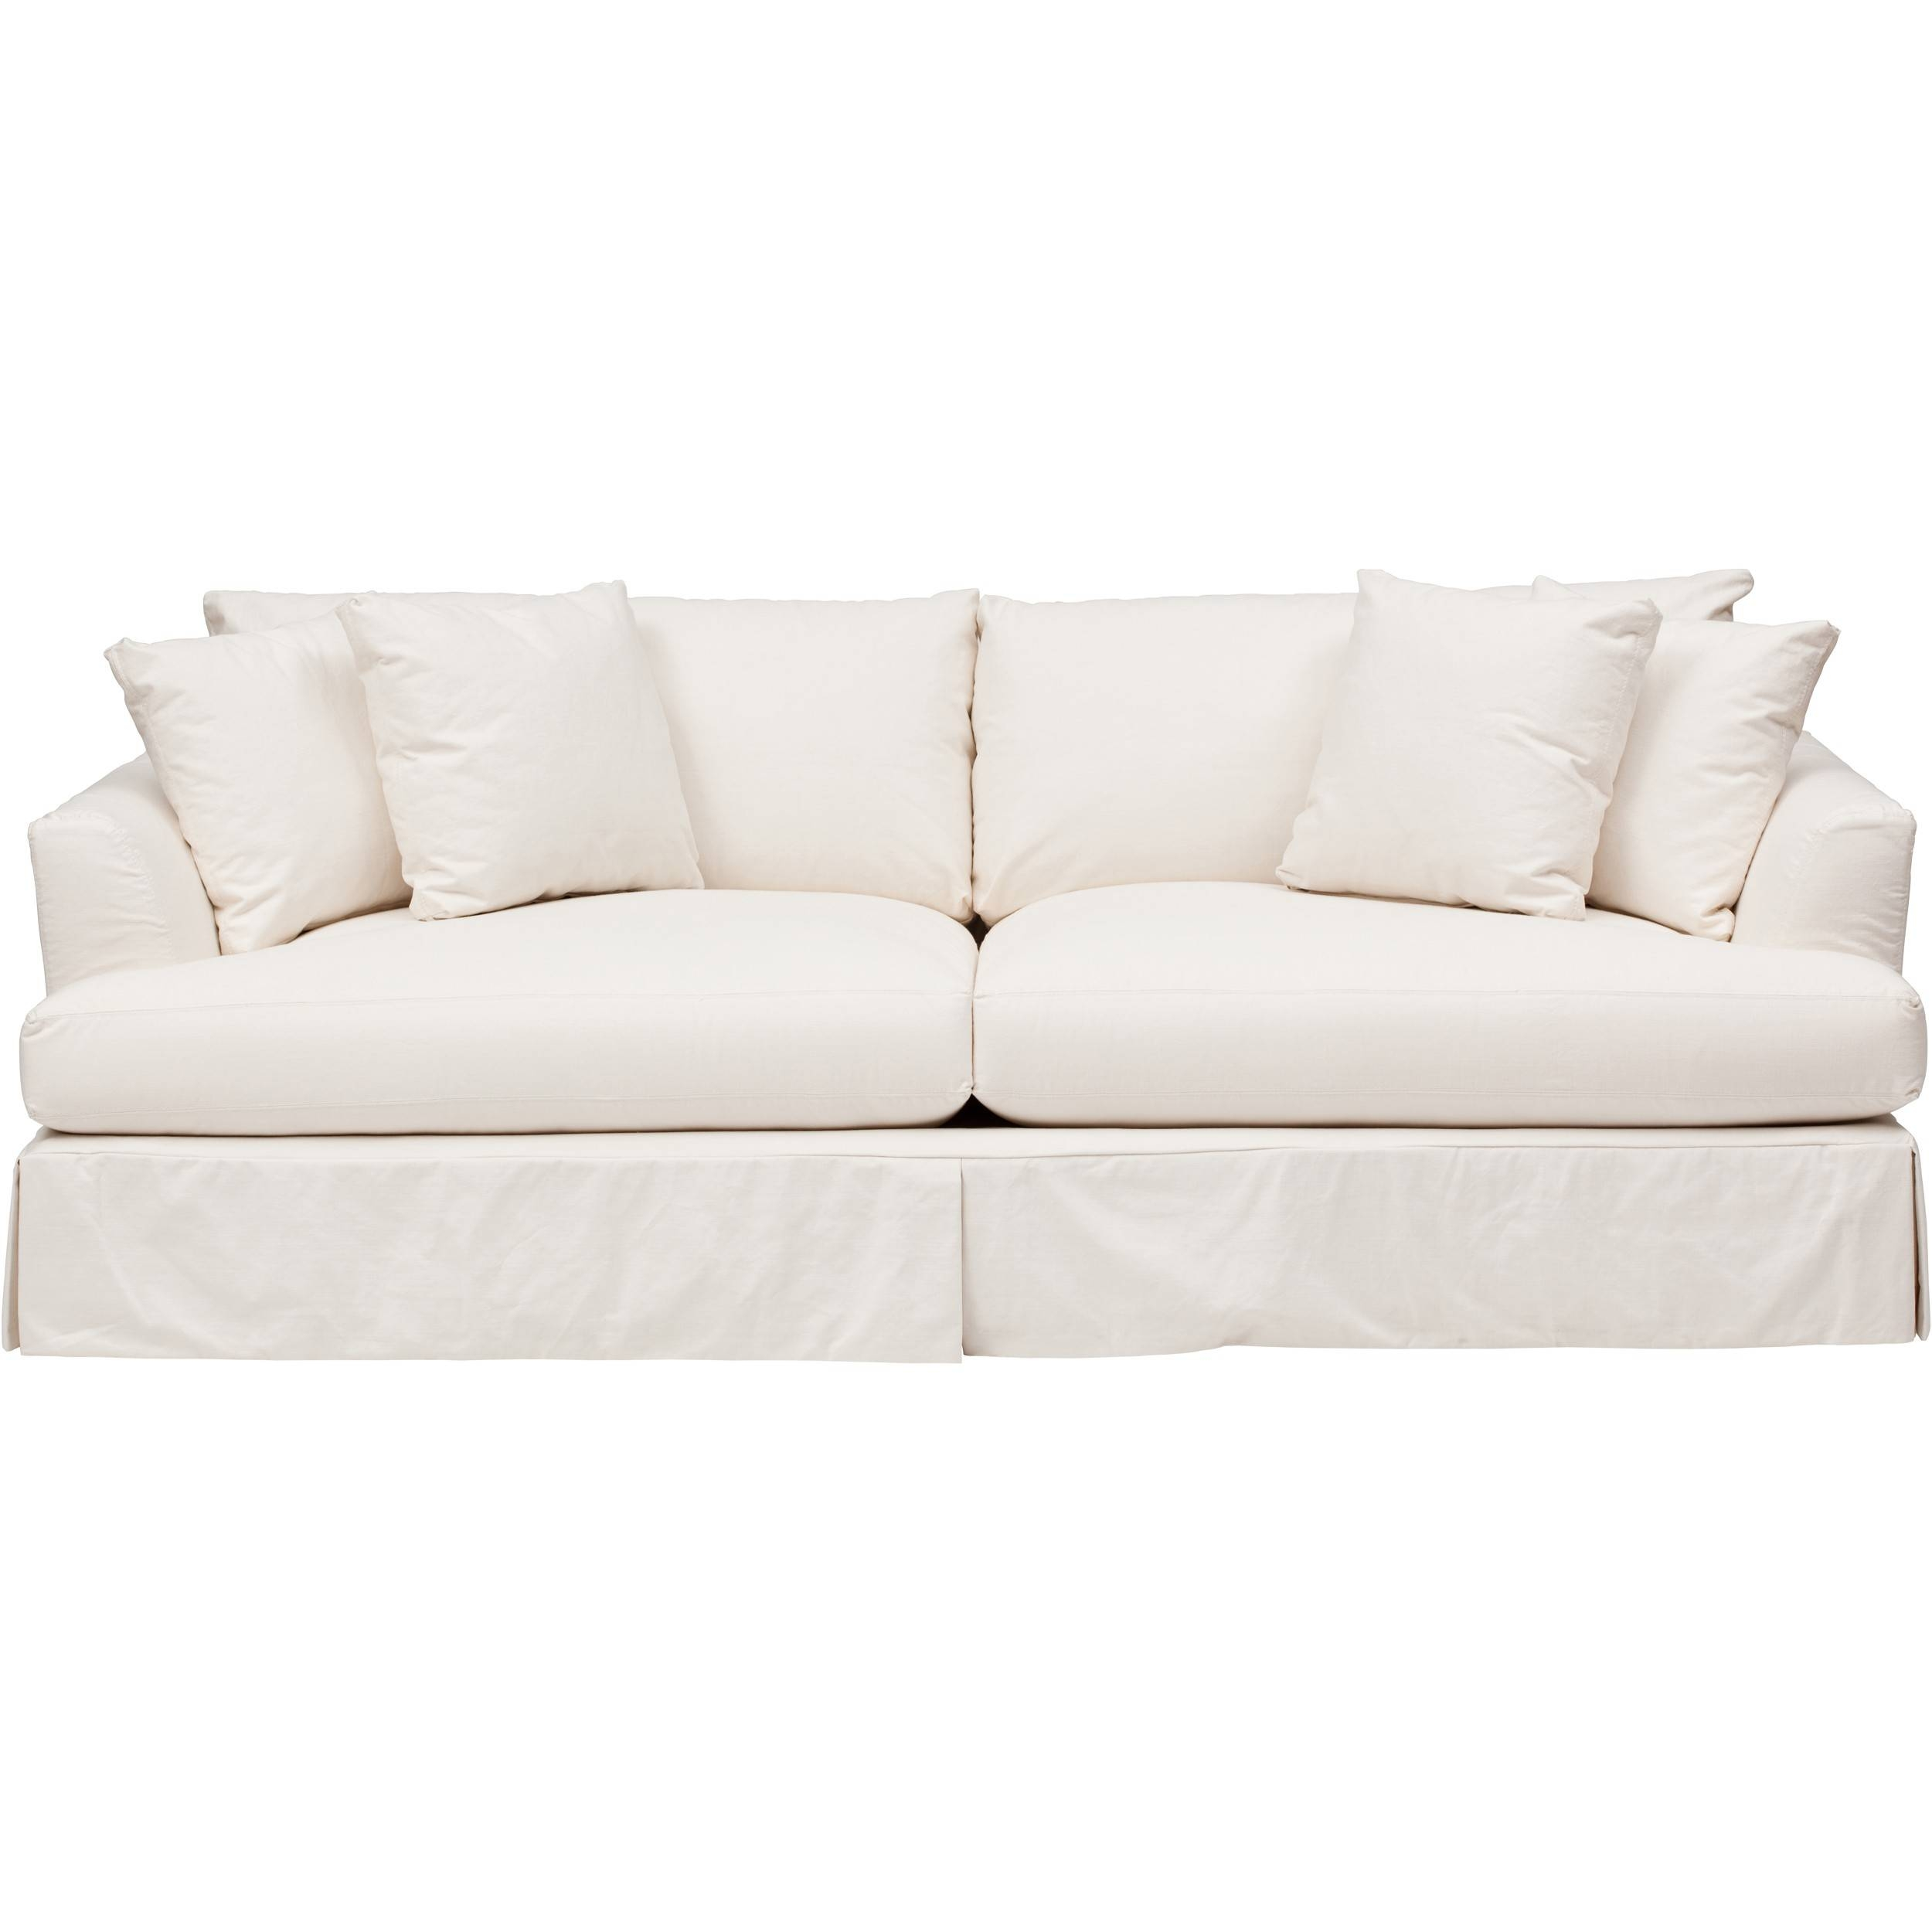 Fresh Free Leather Sofa Loveseat Slipcovers #21136 with Sofa Loveseat Slipcovers (Image 4 of 30)